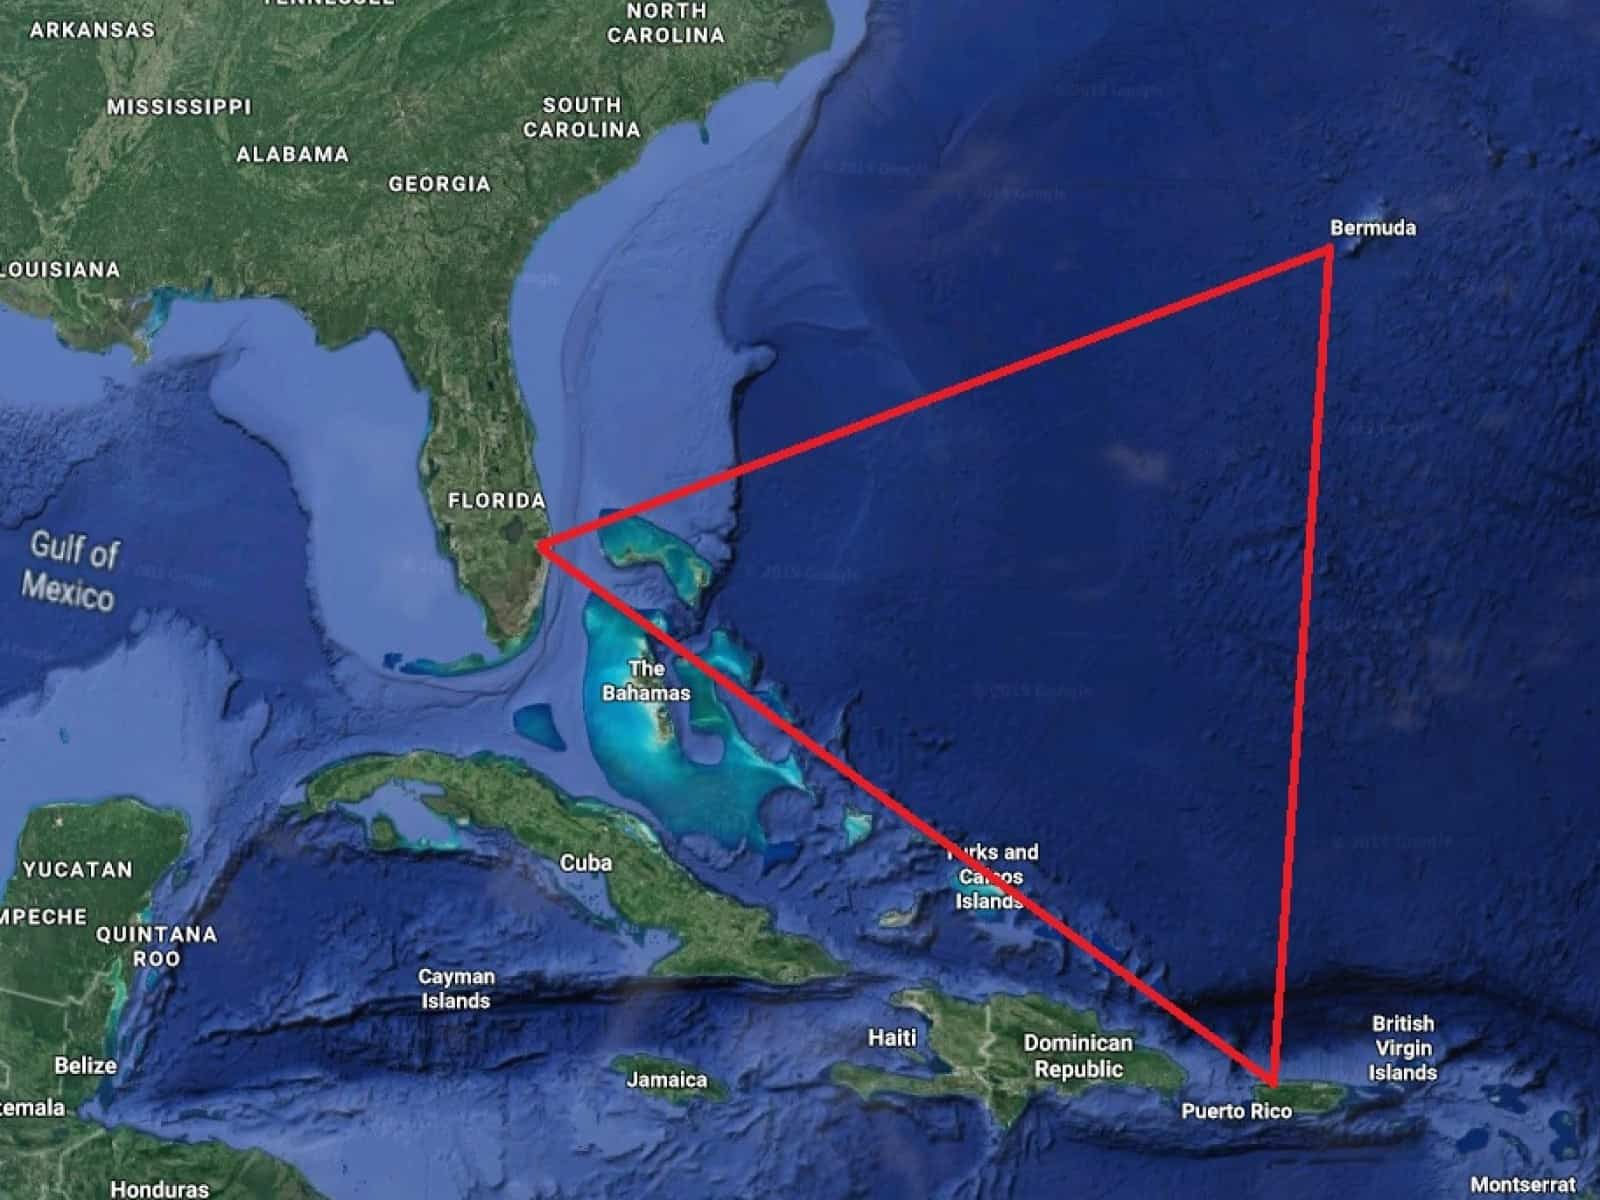 Myths And Facts About The Bermuda Triangle